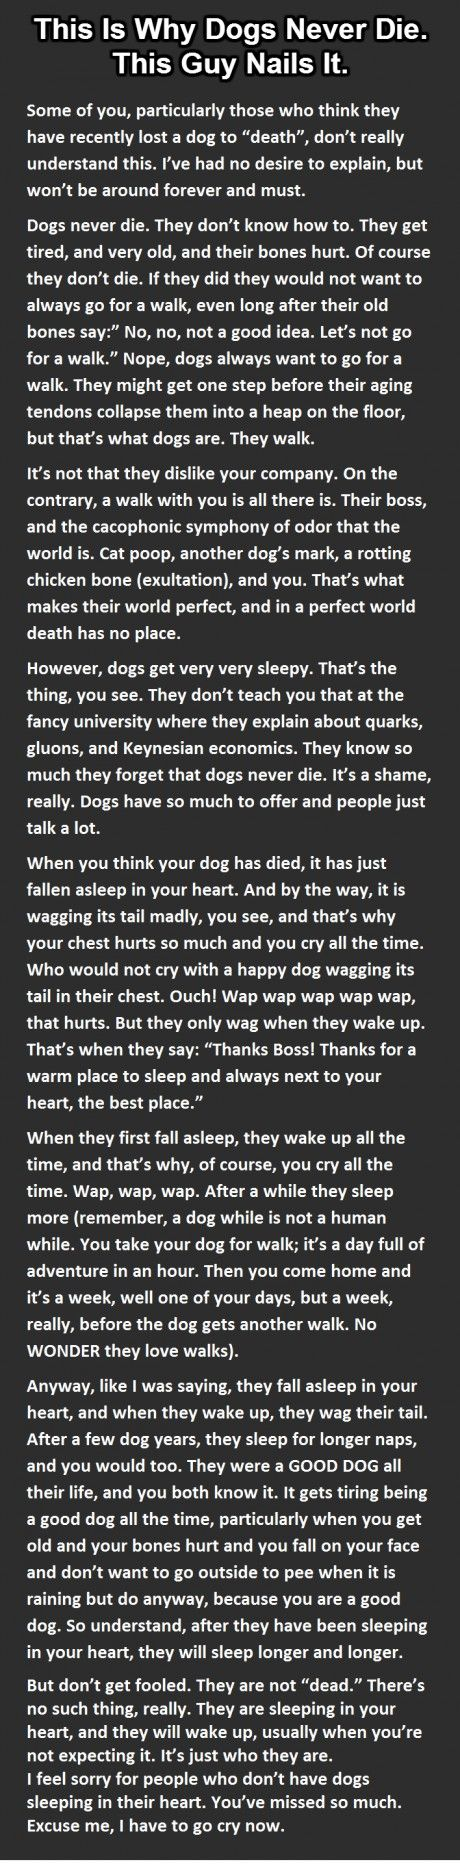 Why dogs never die